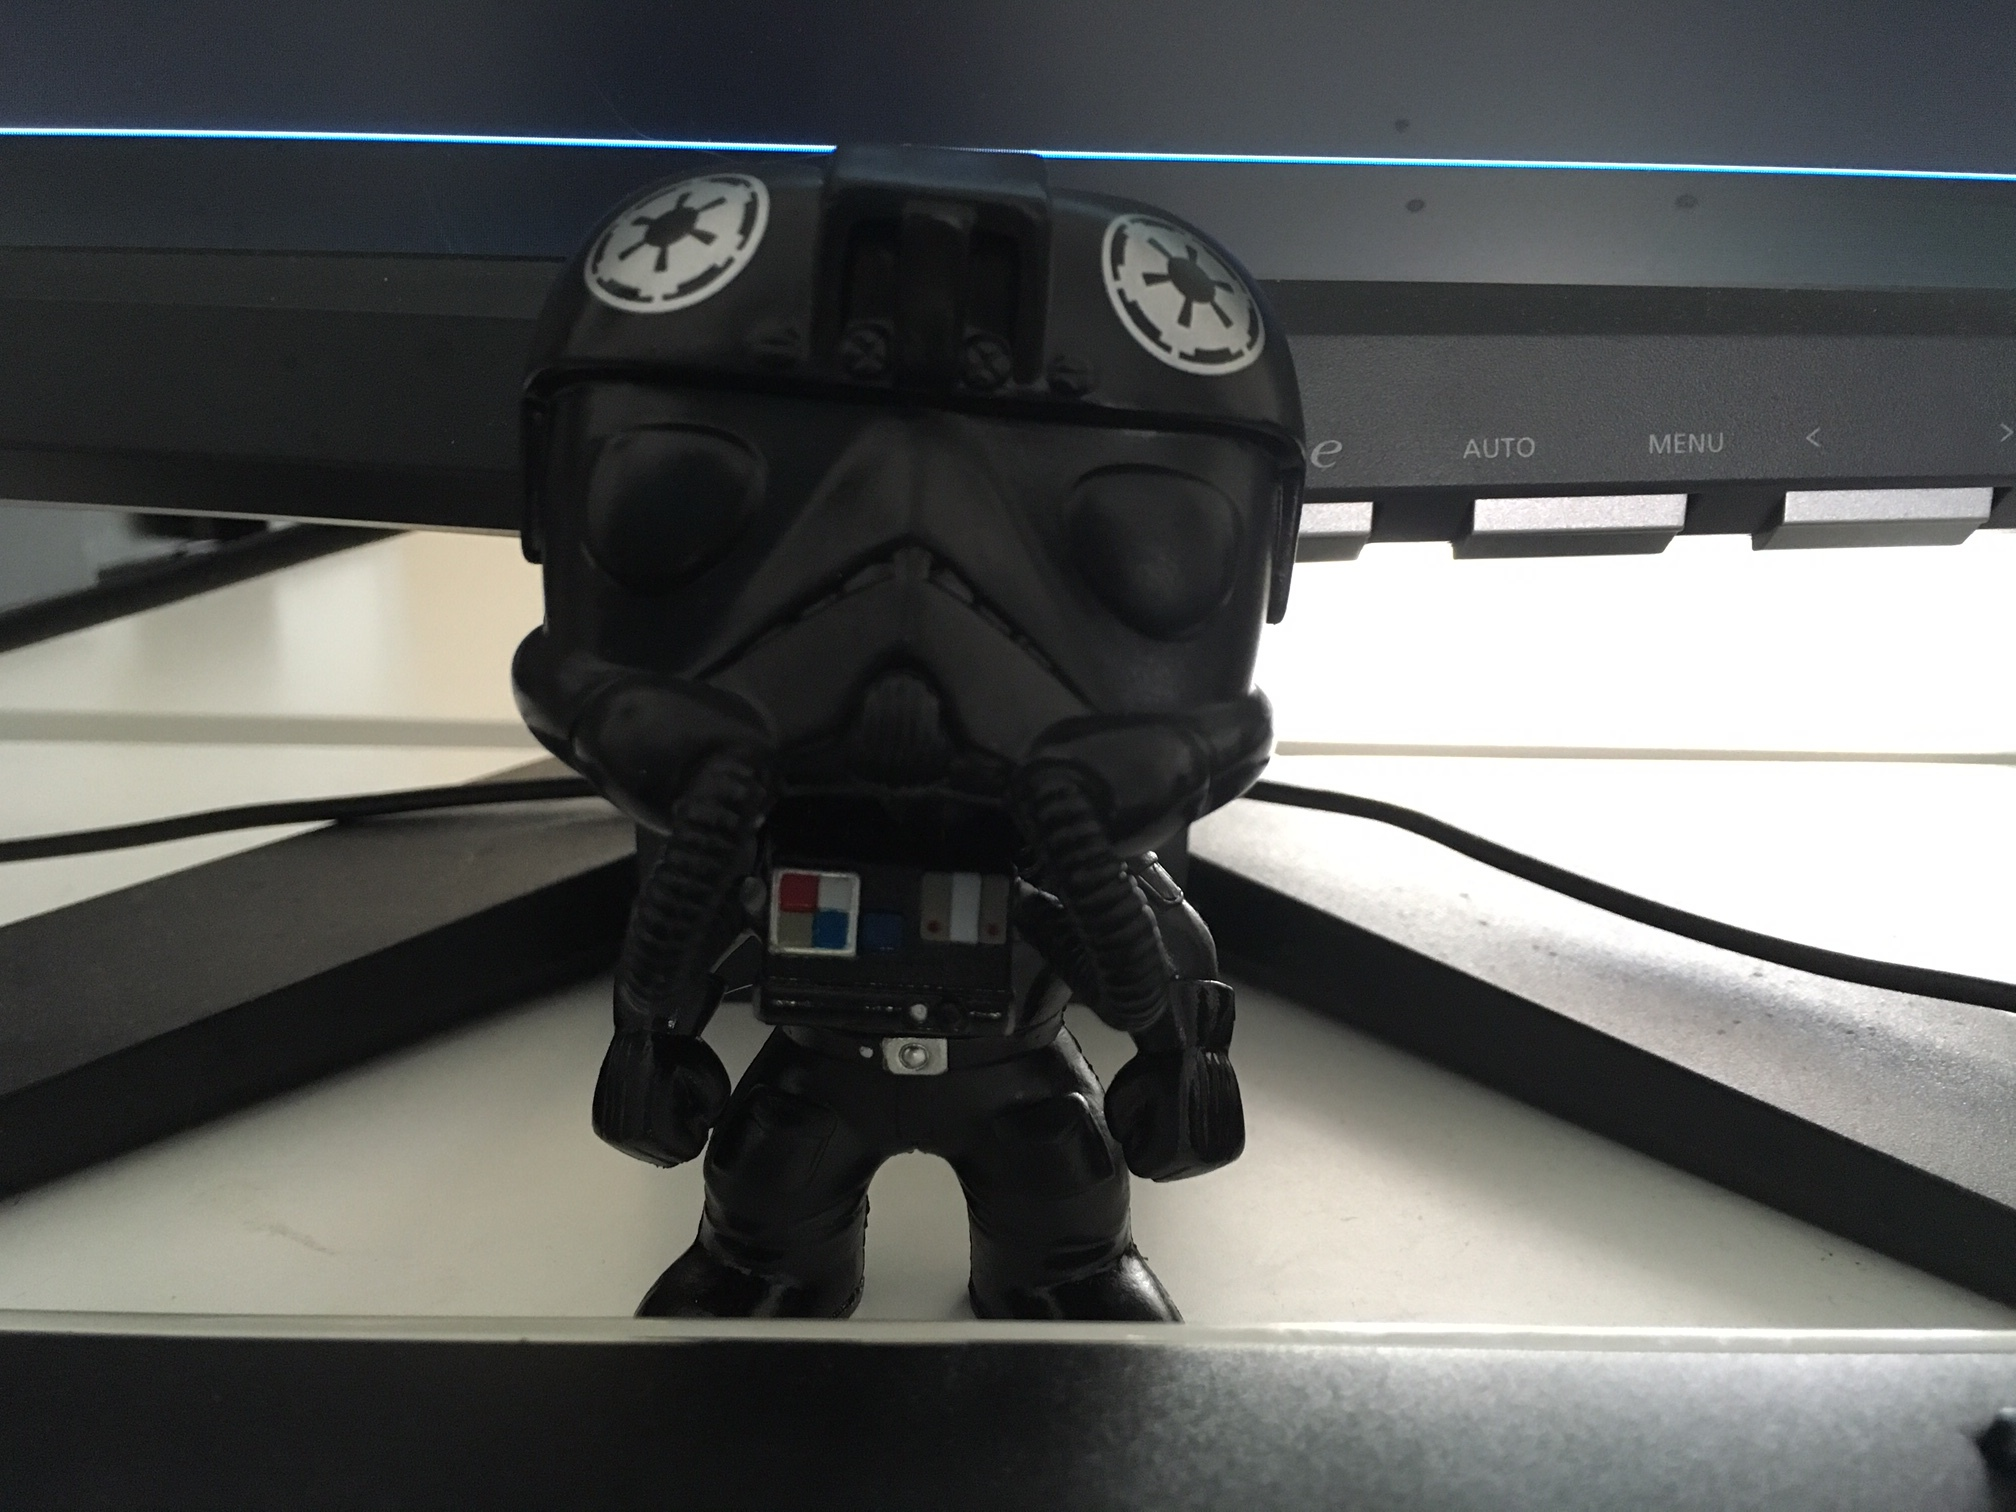 Imperial TIE pilot Funko Pop. His name is Vents because his breathing tube was broken and had to be repaired. I love you all the more for coming to me a little busted up, Vents.